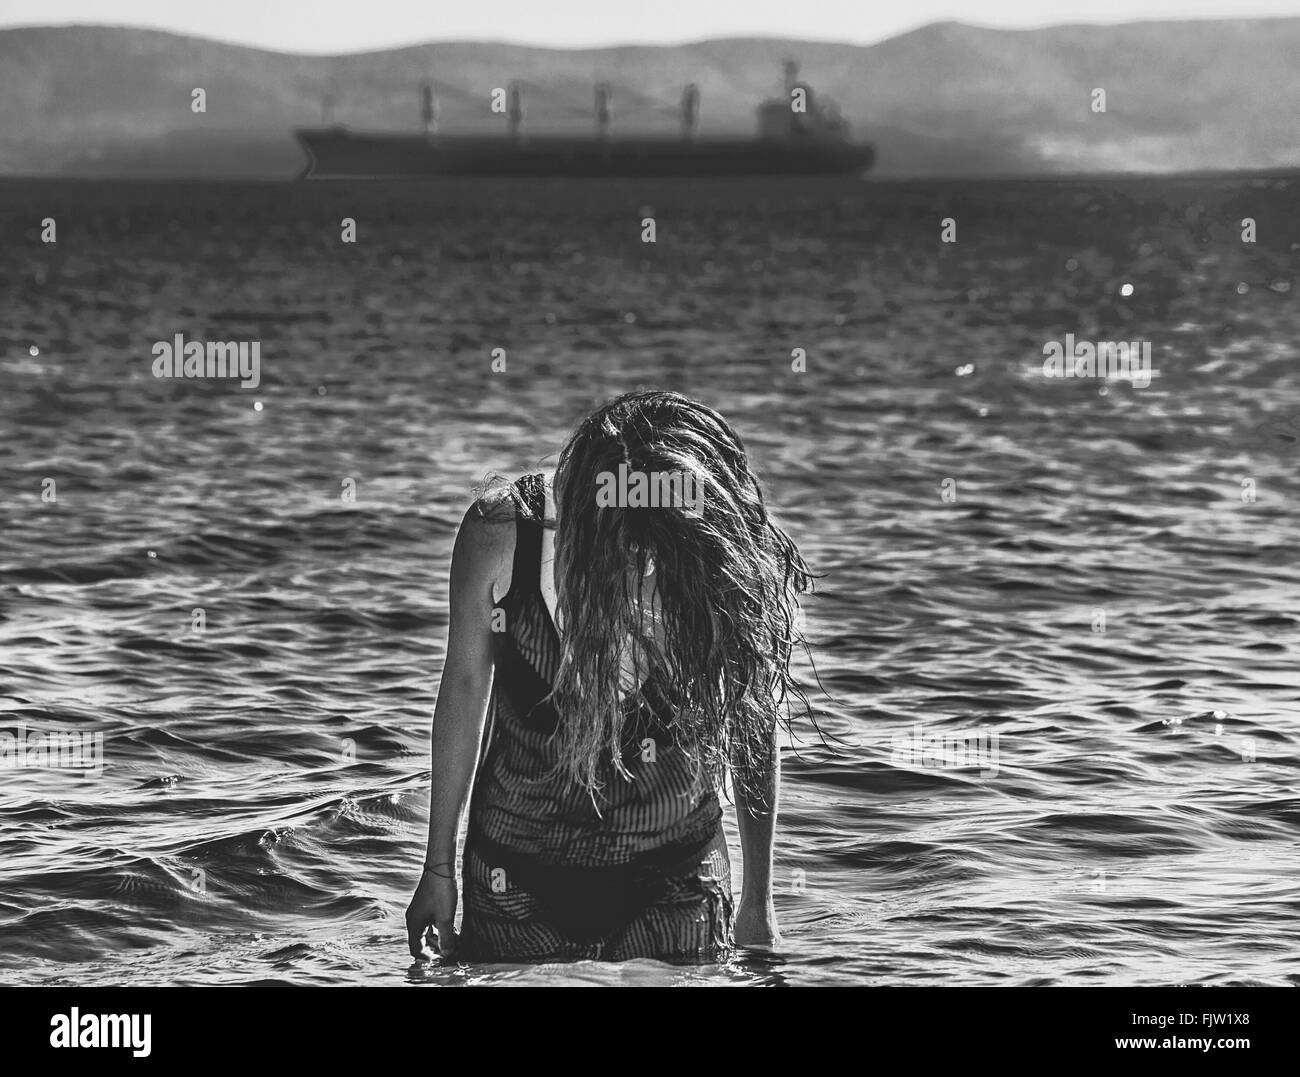 Woman In Bikini Standing In Sea Against Ship - Stock Image